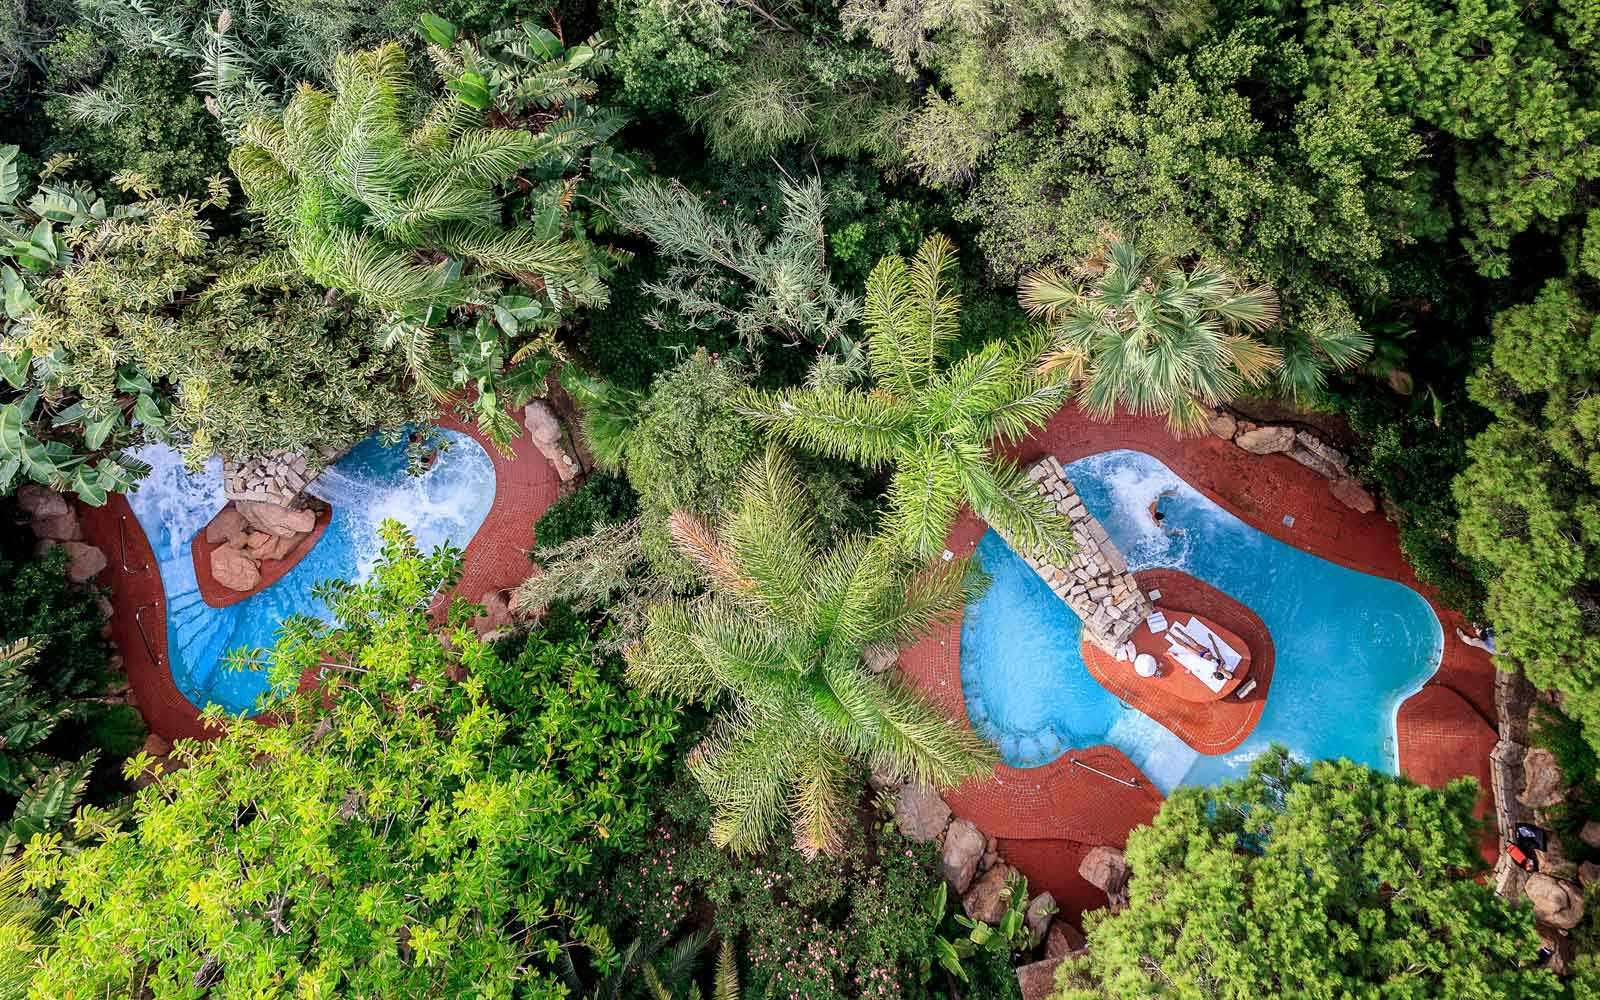 Acquaforte Spa pools aerial view at Forte Village Resort